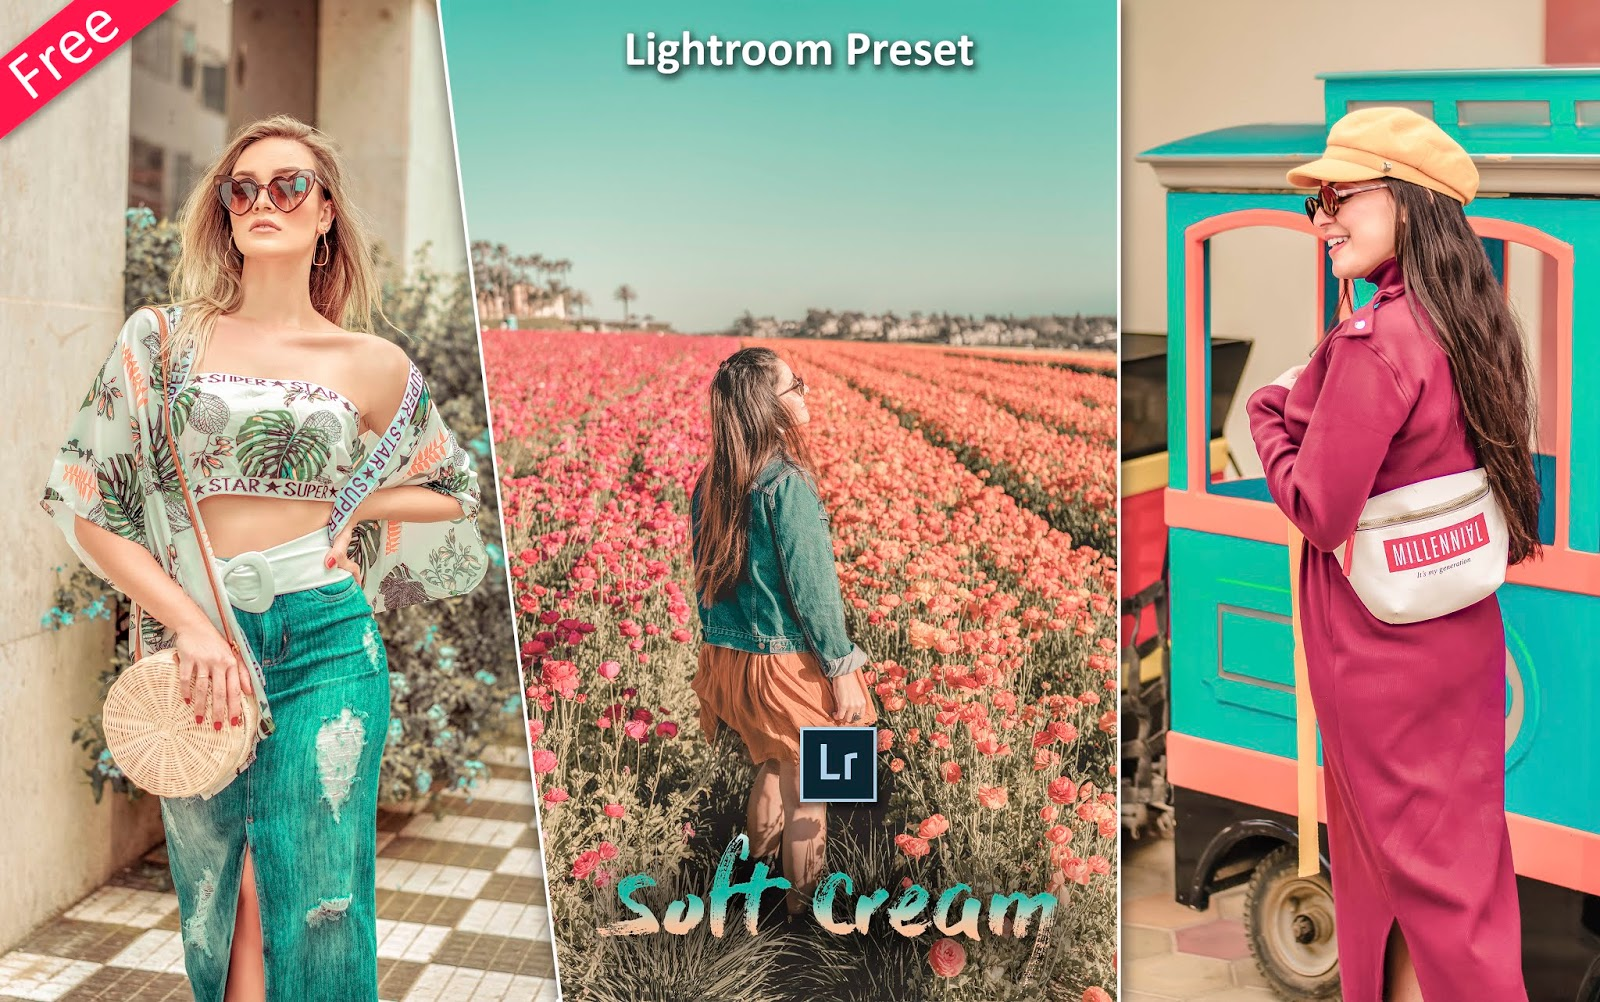 Soft Cream Lightroom Preset for Free | How to Edit Photos Like Soft Cream Effect in Lightroom